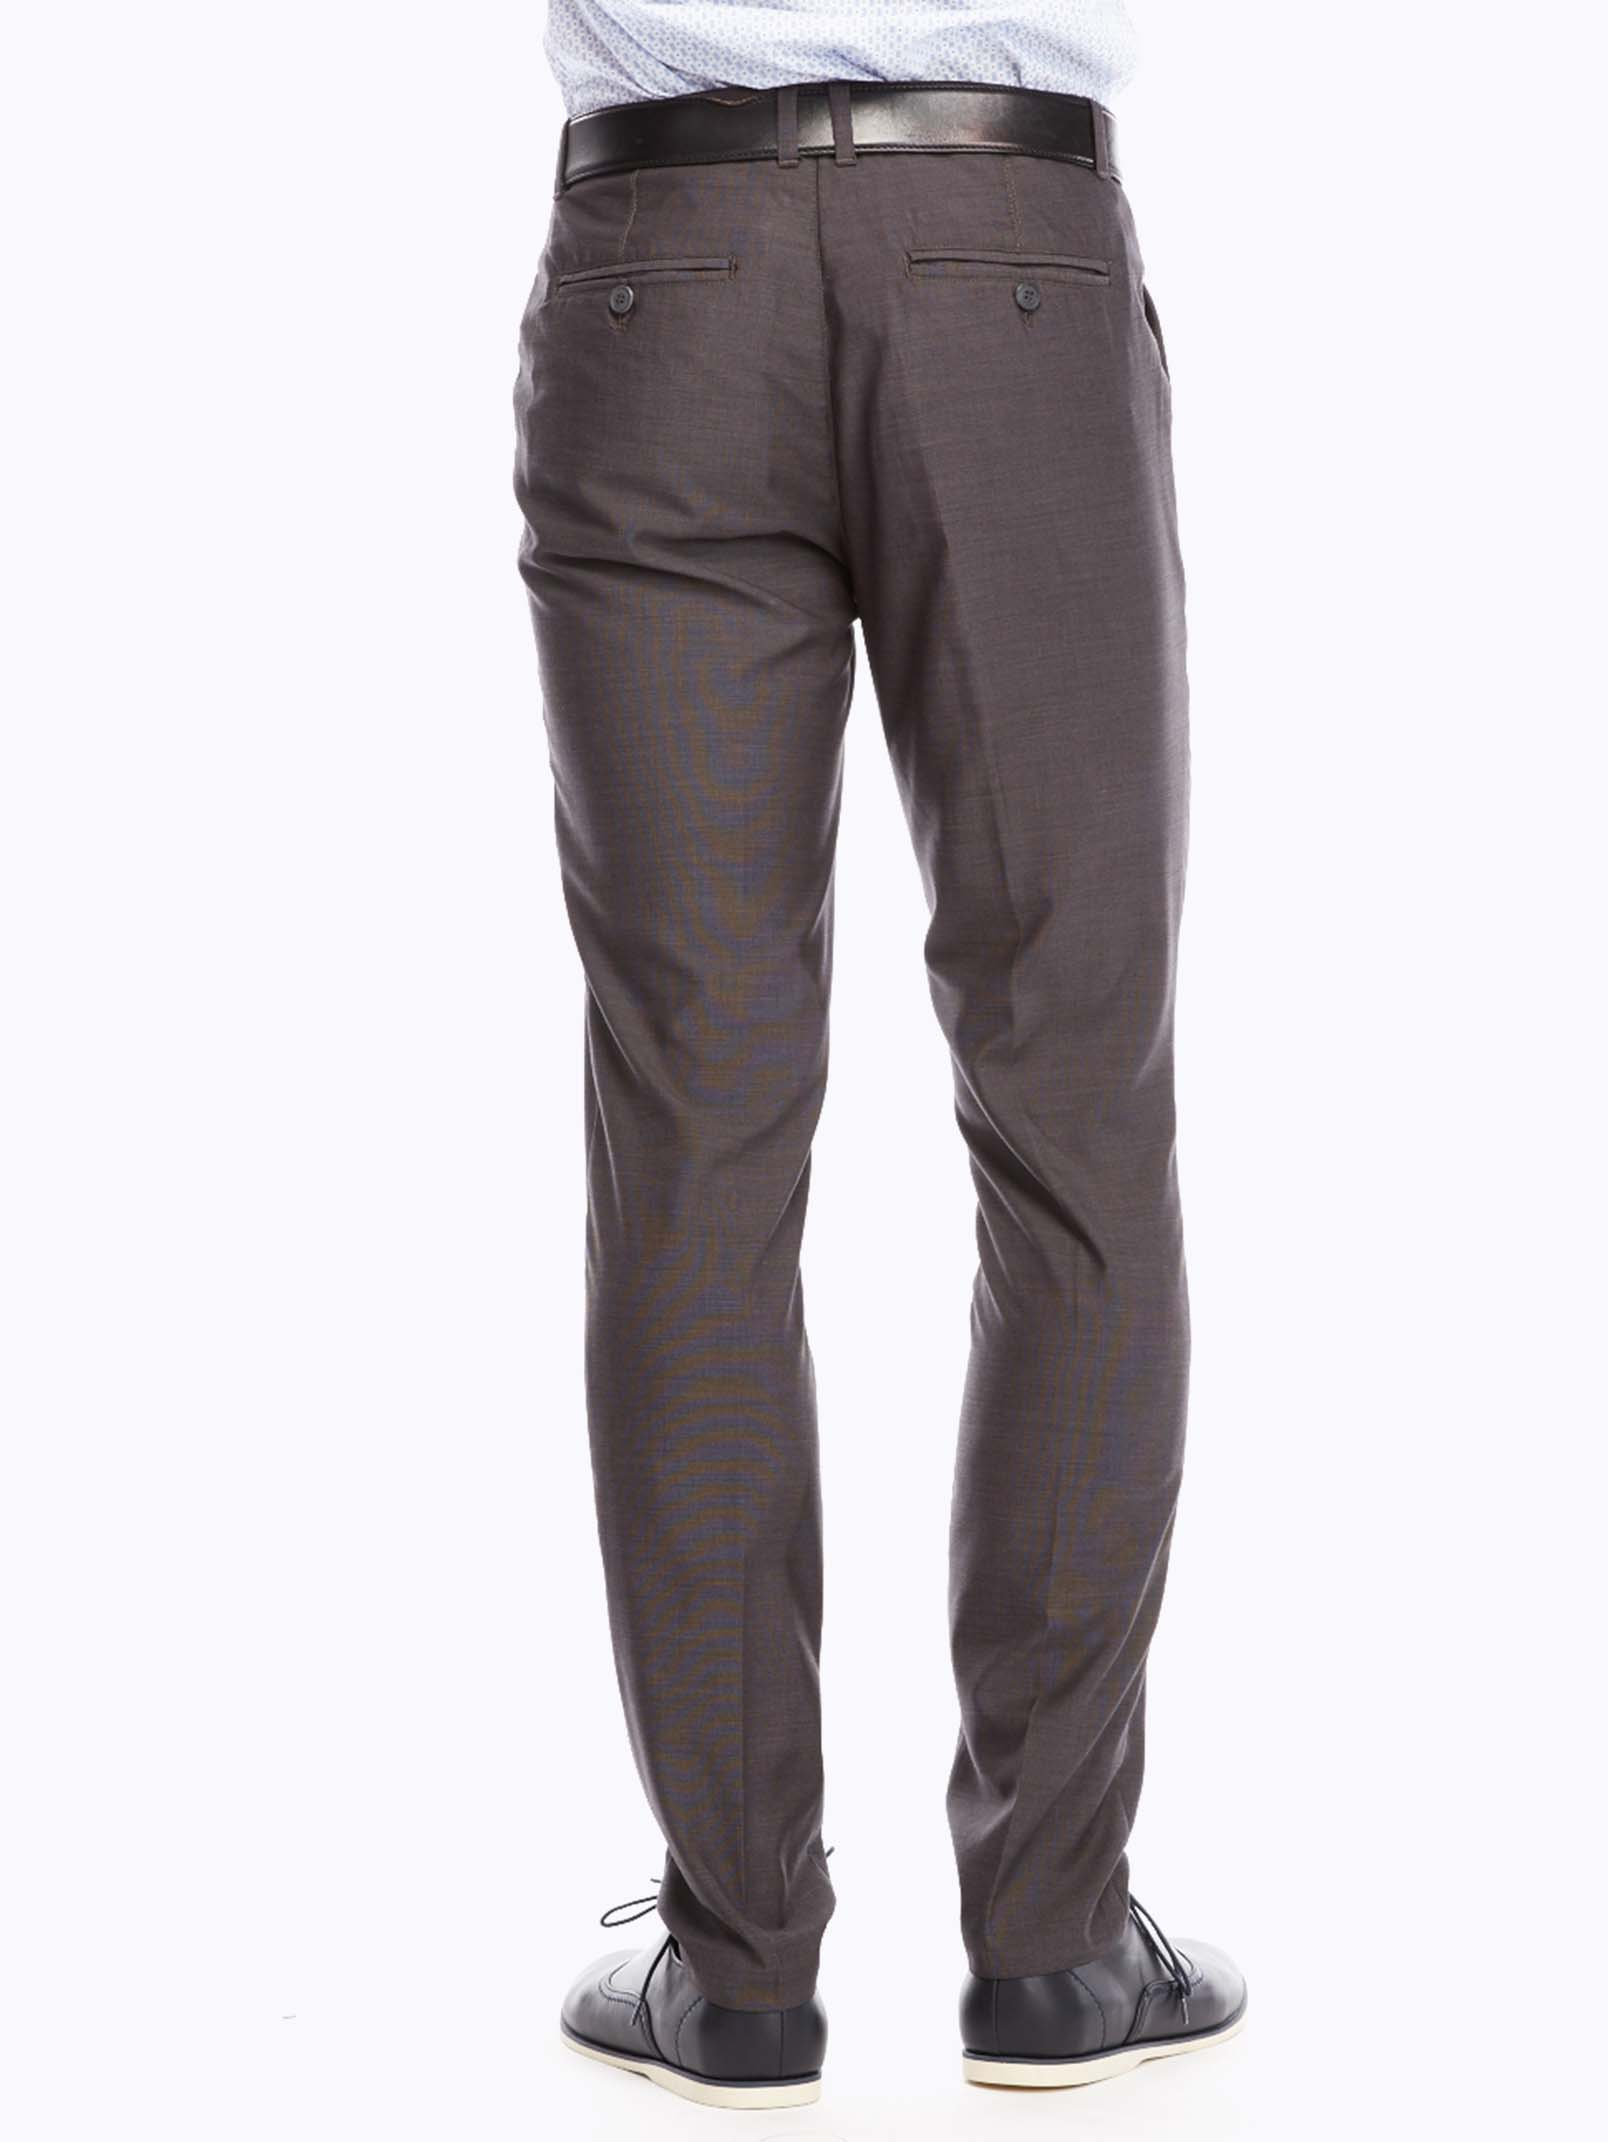 Men's Grey Straight-Leg Trousers